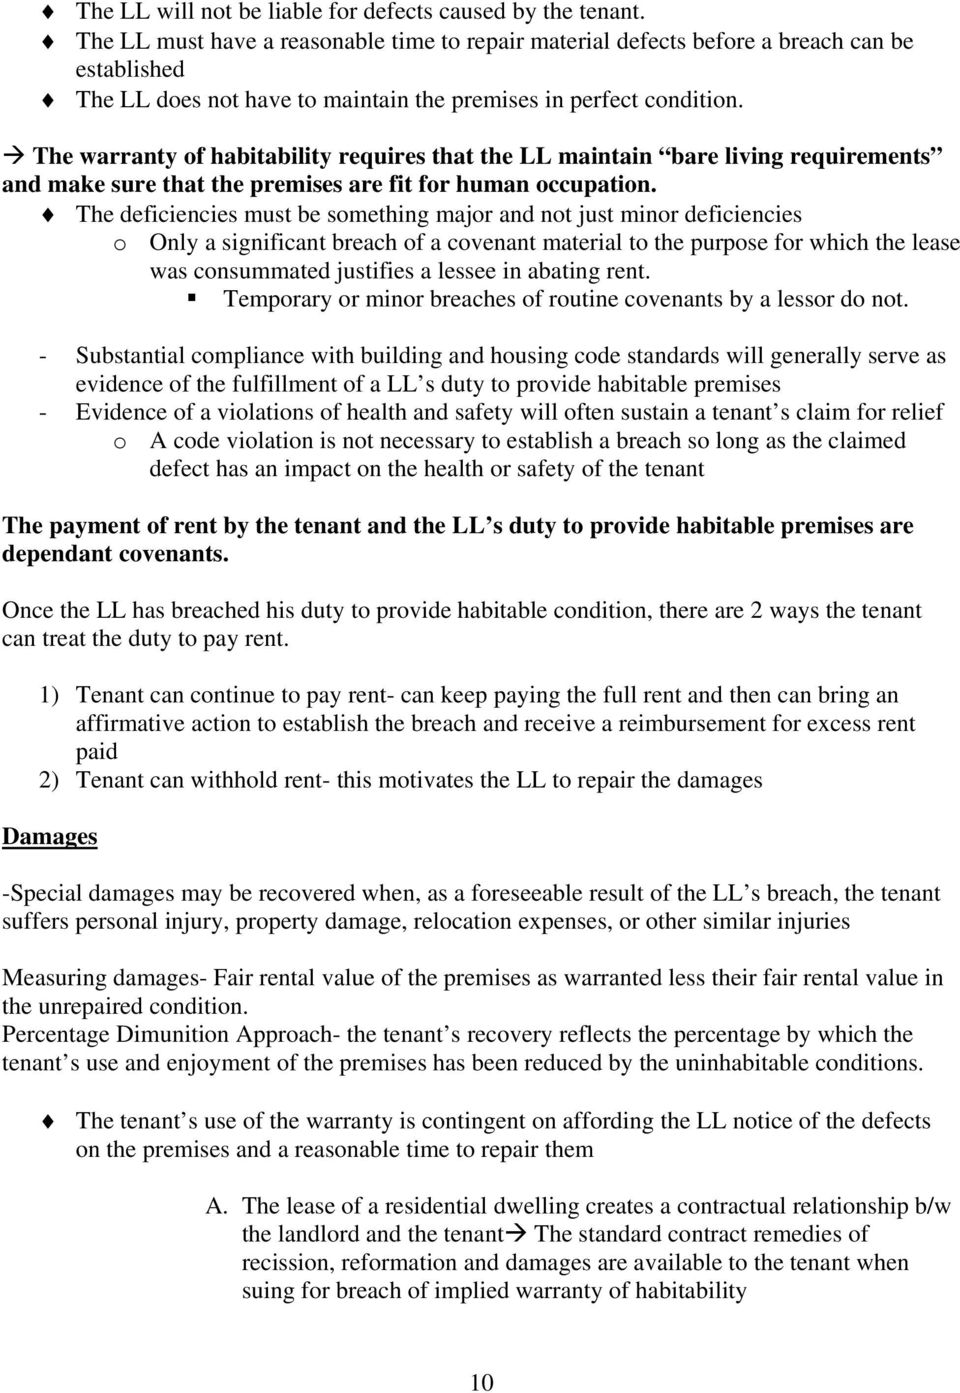 Property Outline  - Nutshell- Lease of land conveys an